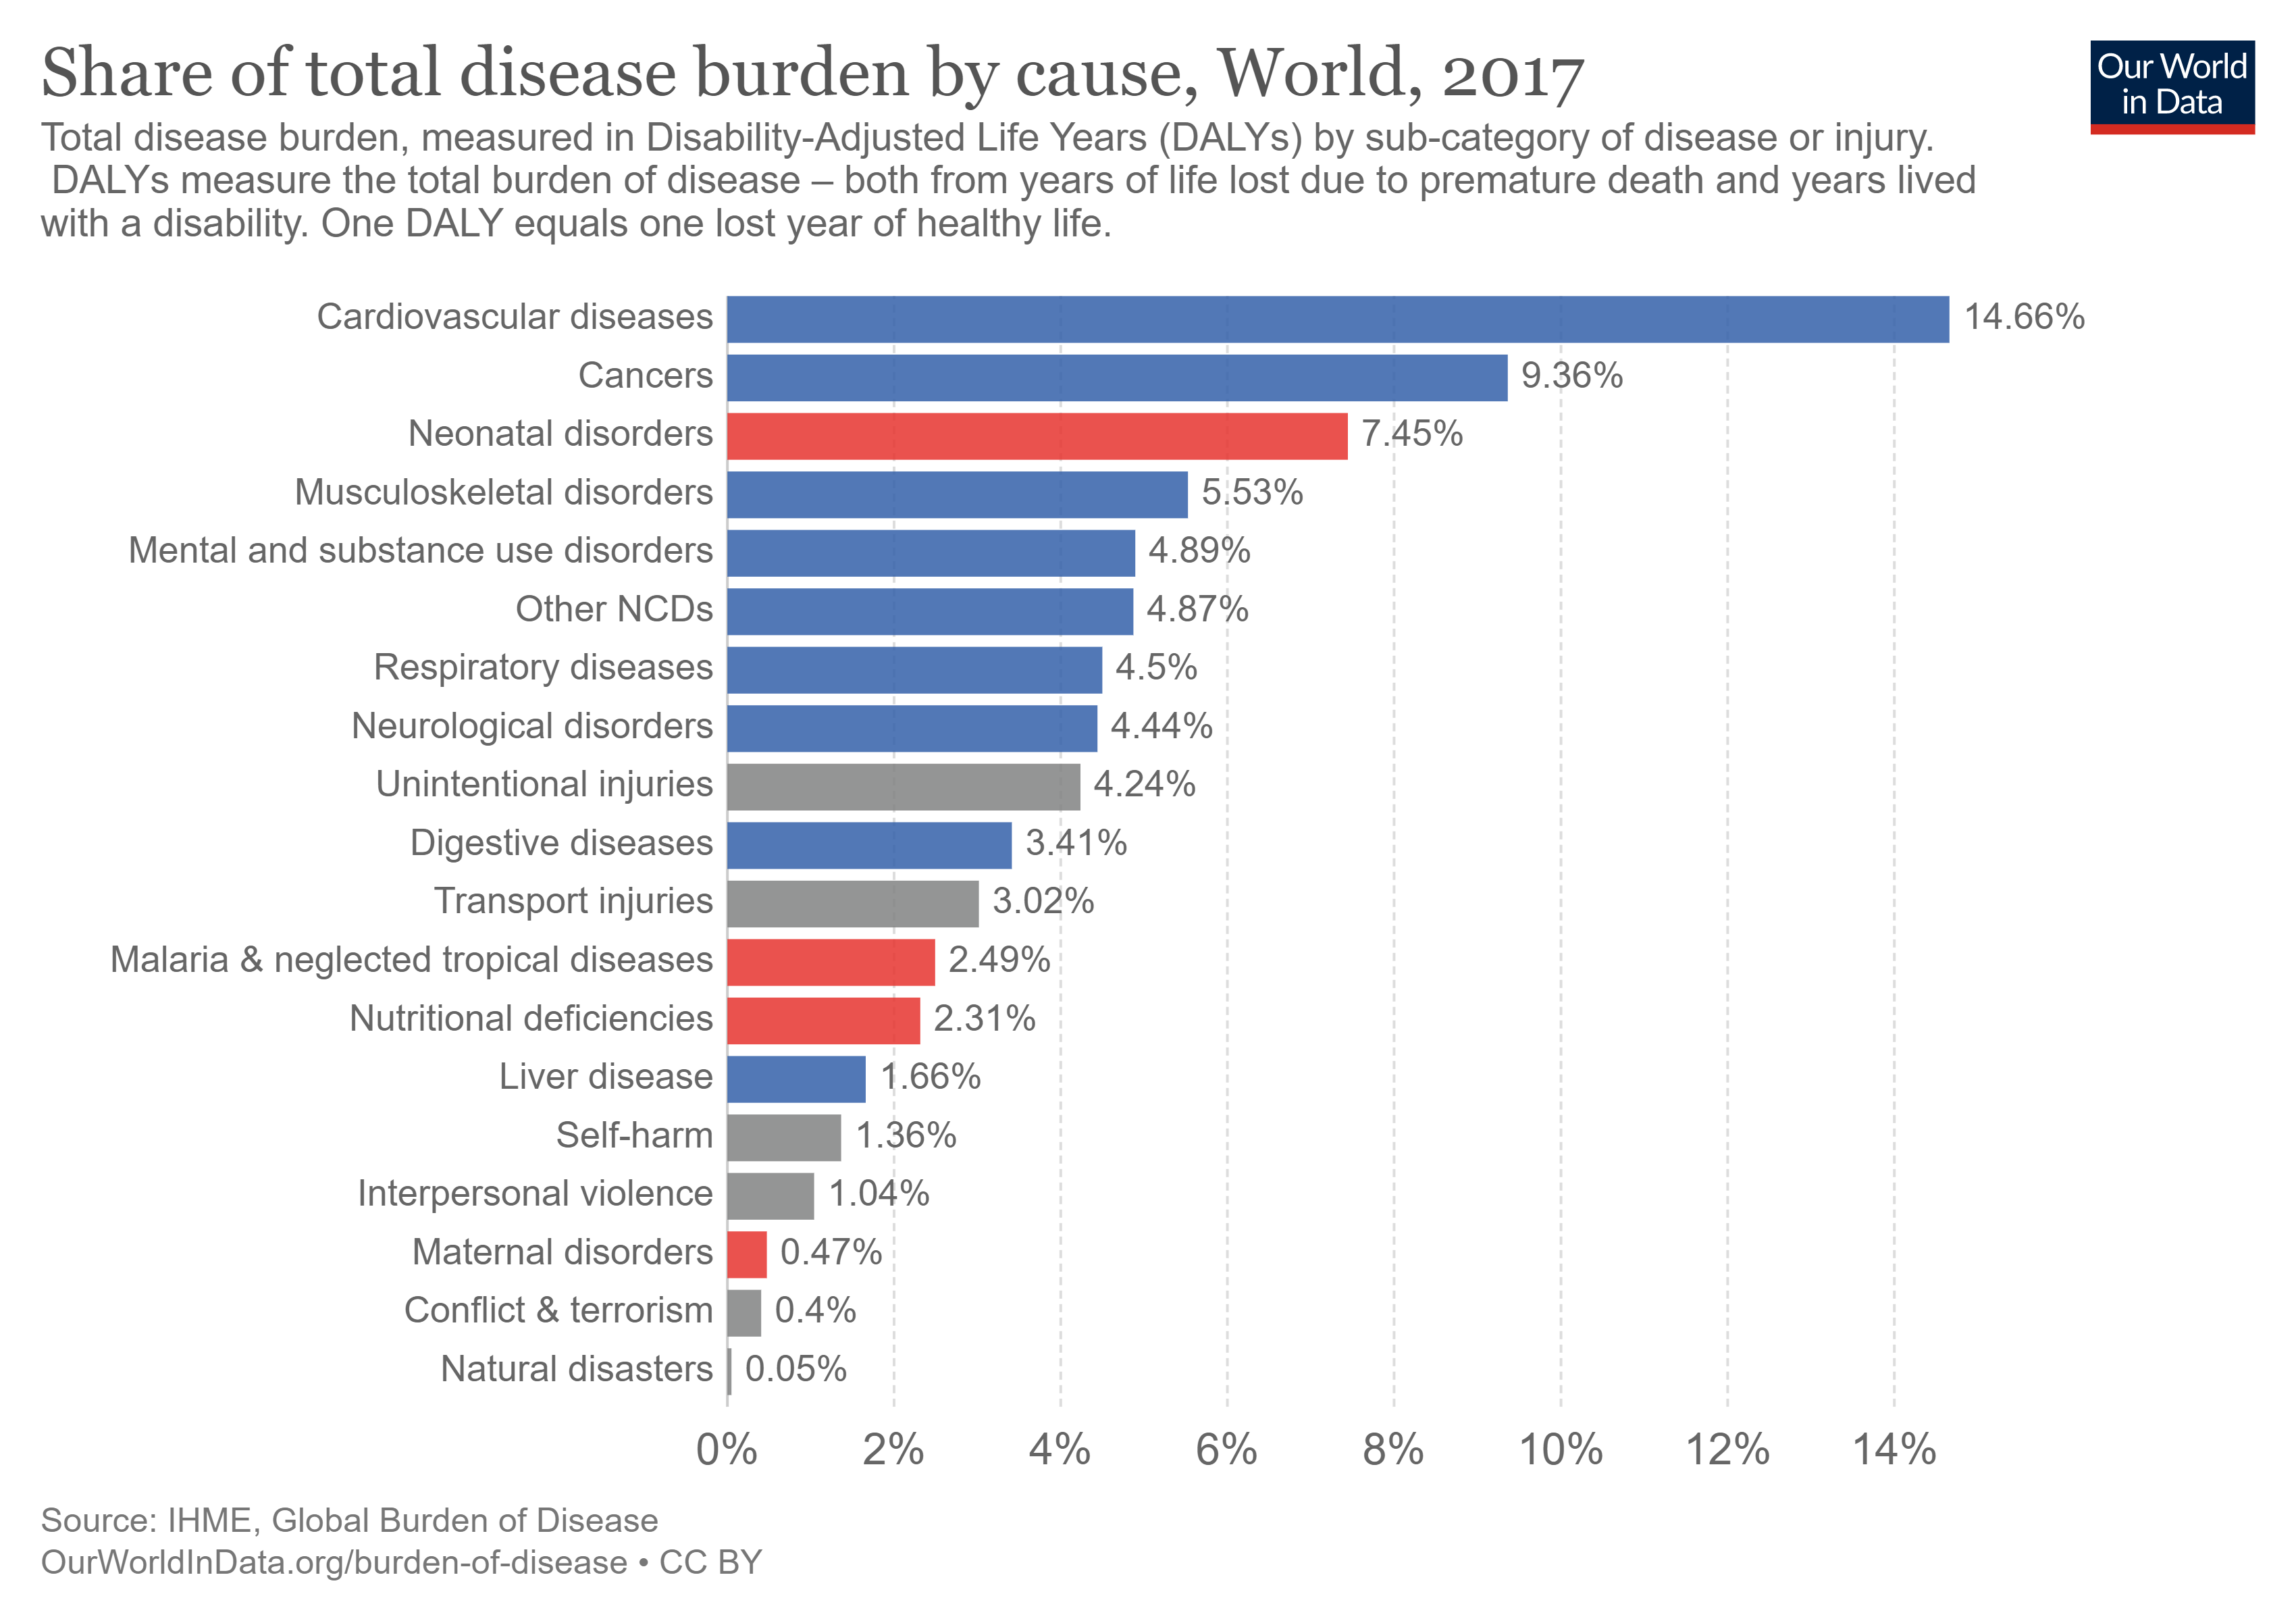 Total disease burden by disease or injury